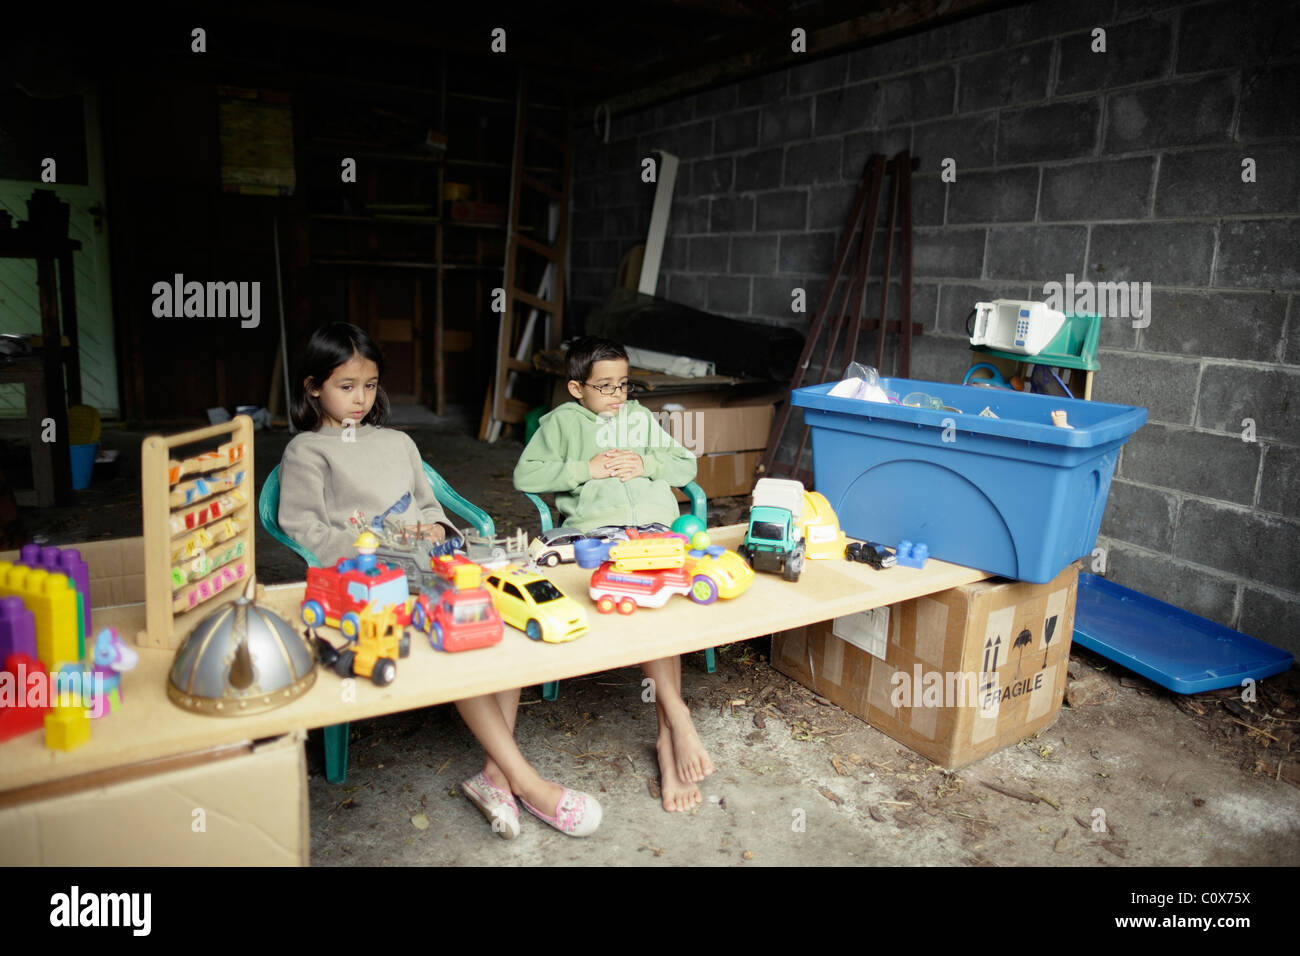 Boy and girl set up garage sale stall to sell their old toys. - Stock Image